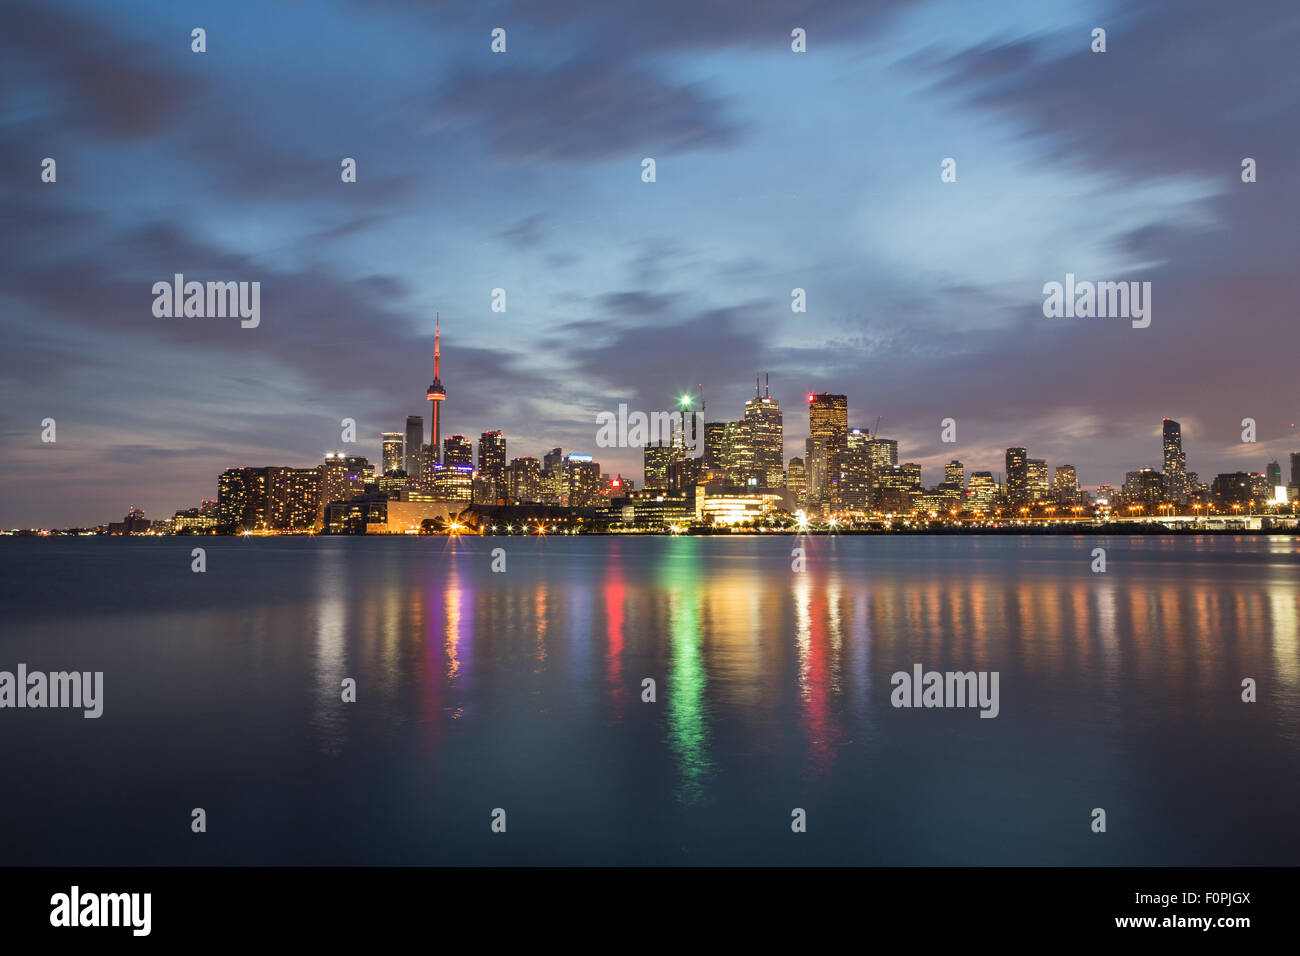 The Toronto Skyline at Night showing buildings and reflections in Lake Ontario - Stock Image